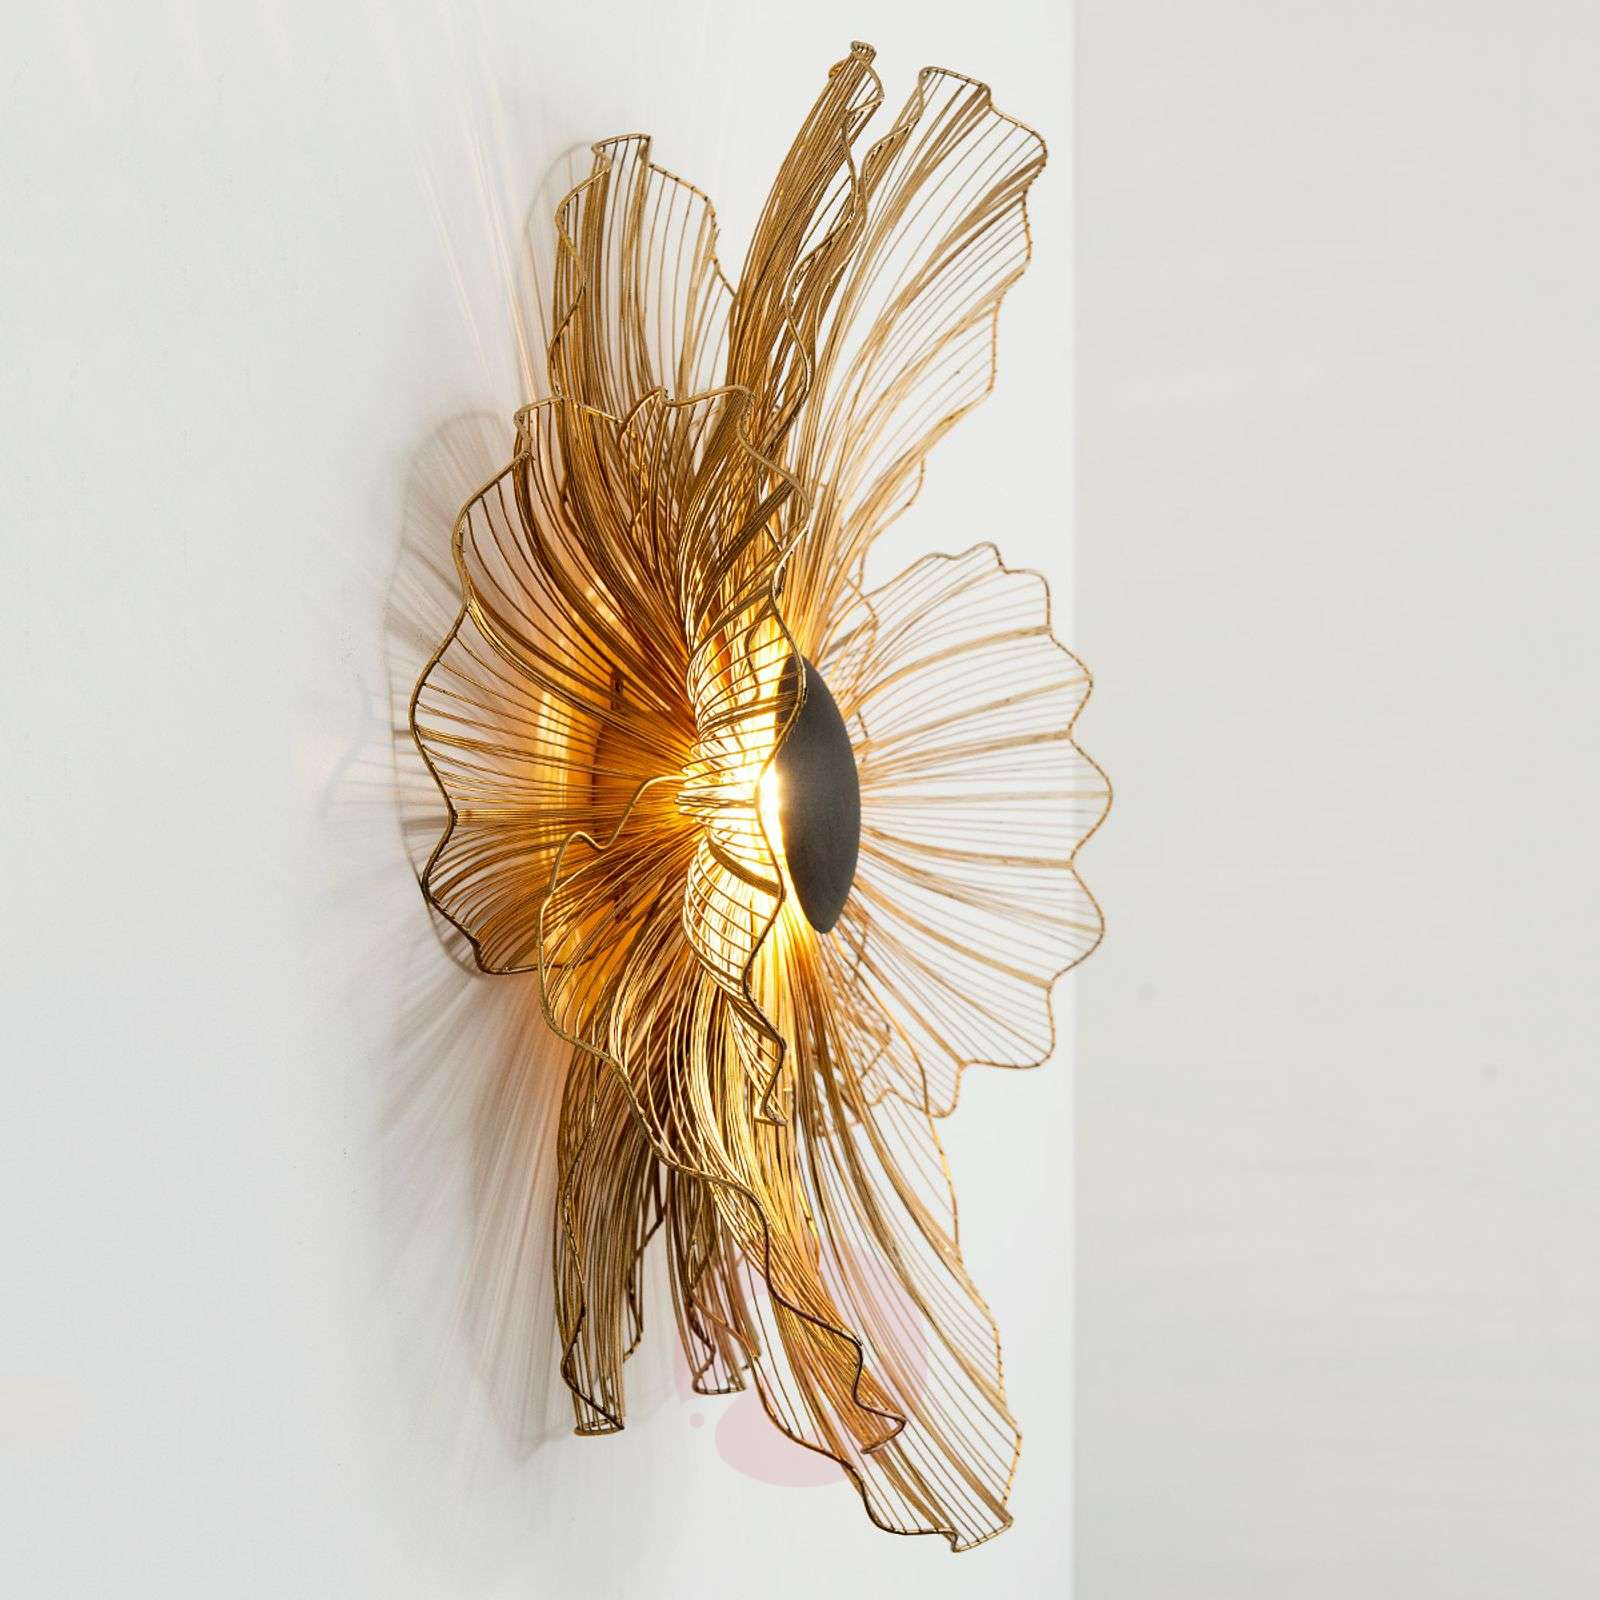 Floral wall light Tremolo large-4512509-01